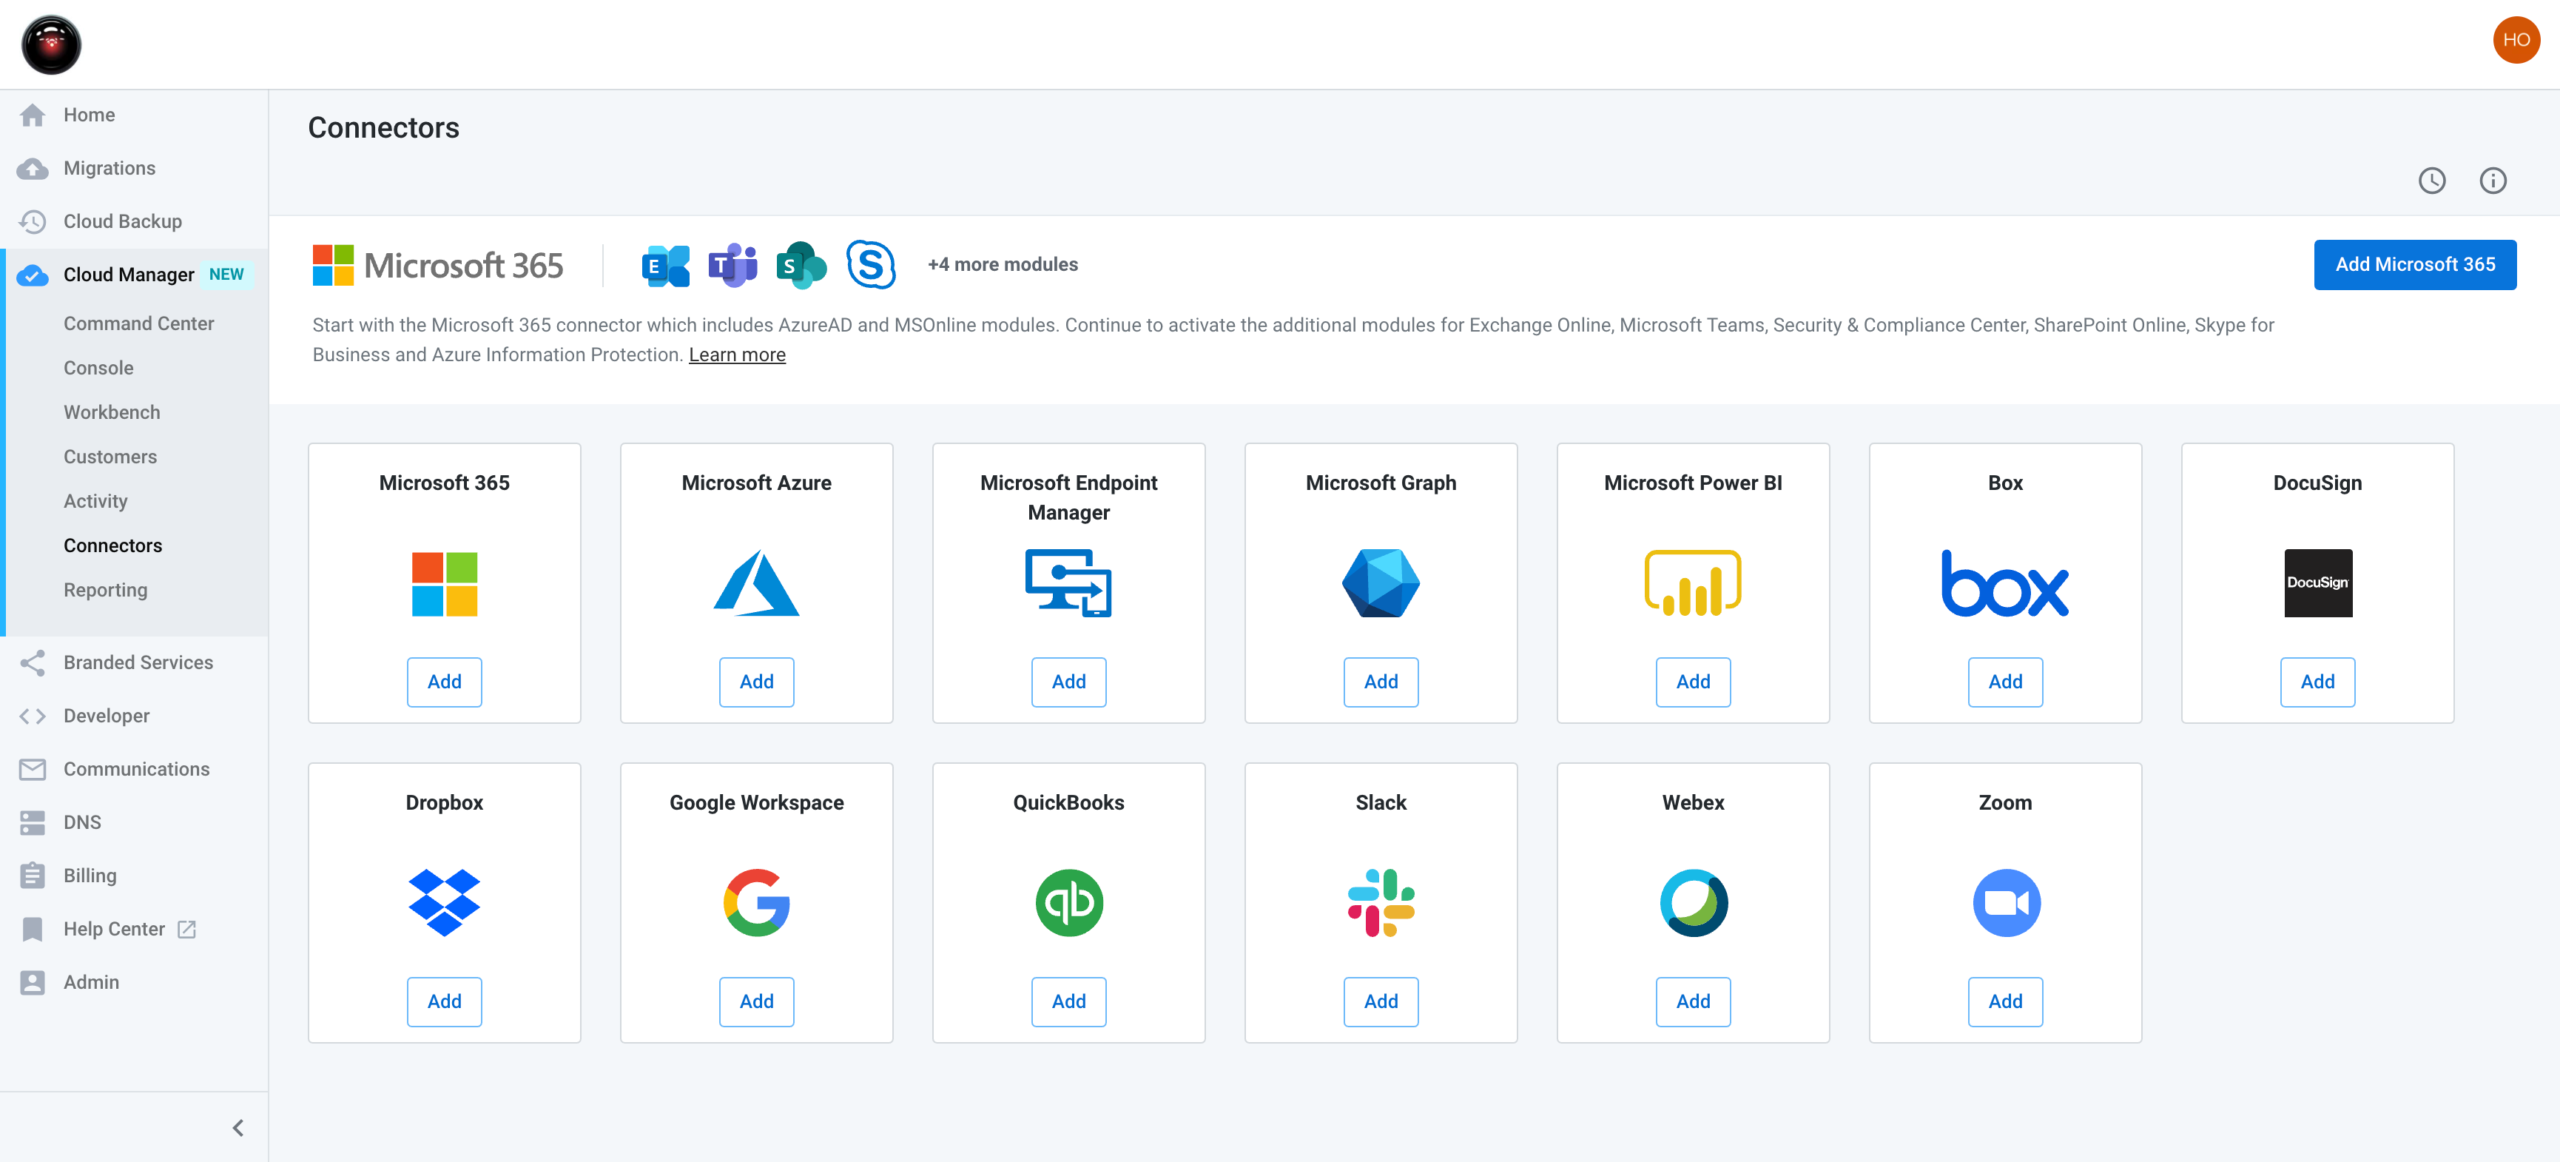 Cloud manager product view of cross SaaS user management